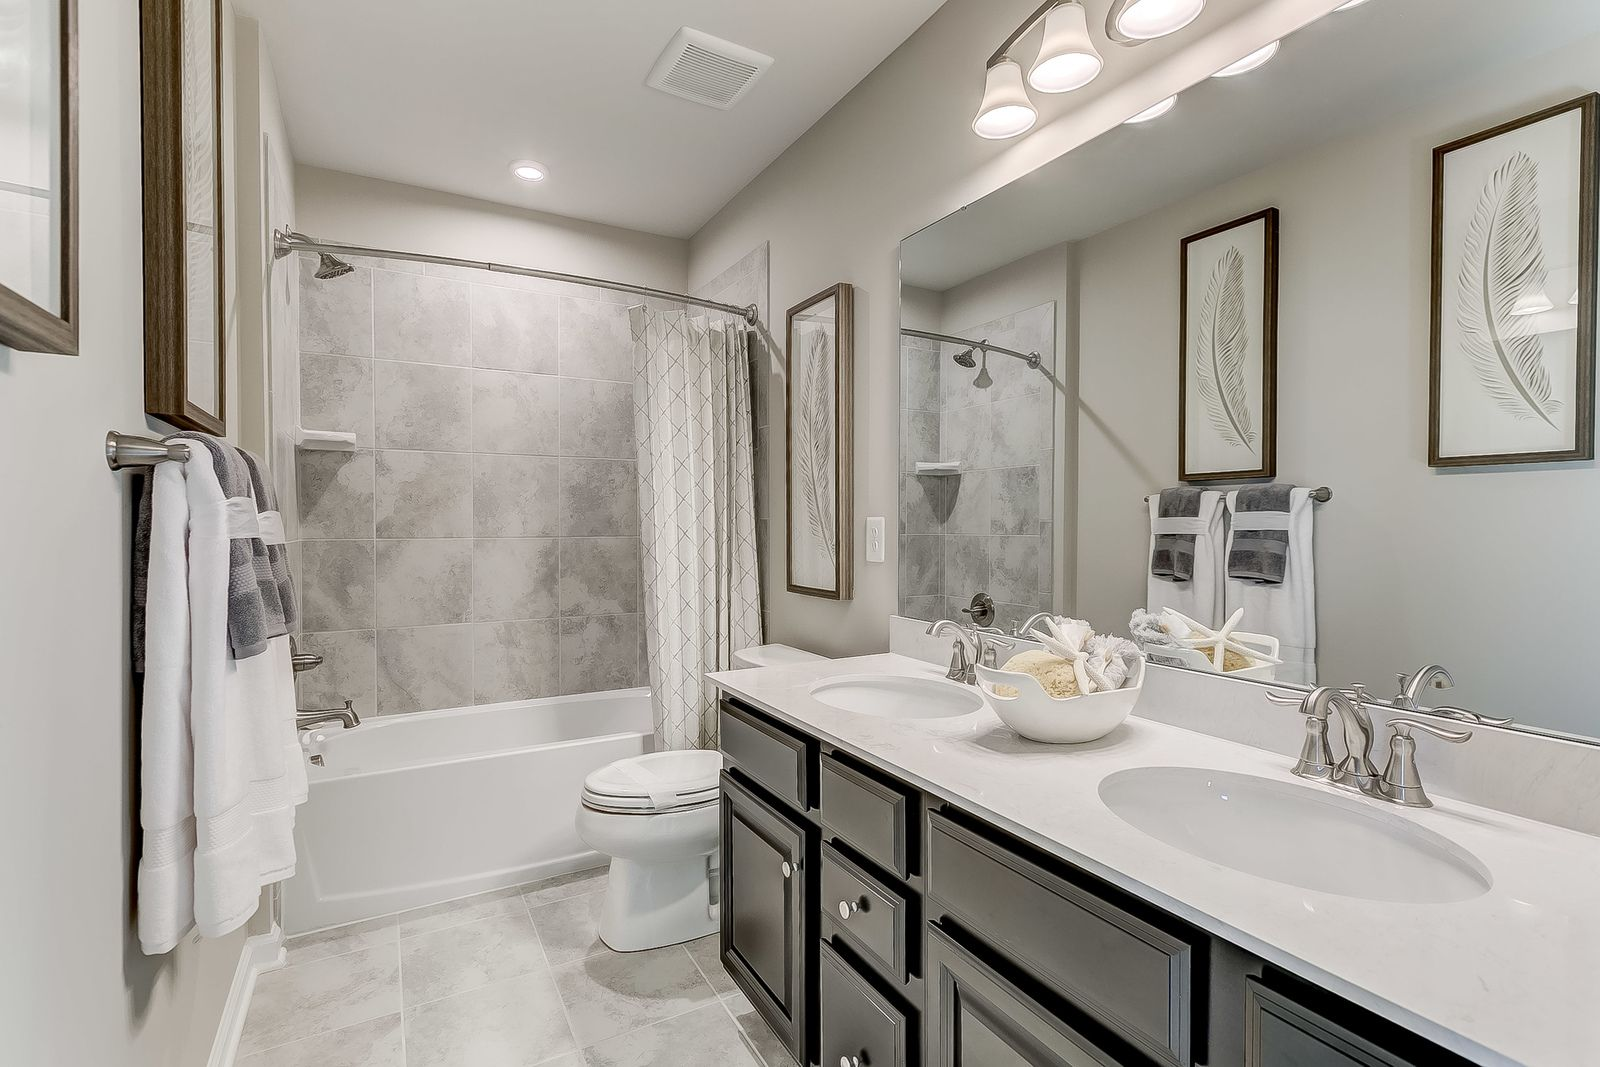 Bathroom featured in the Saint Lawrence By Ryan Homes in Washington, MD